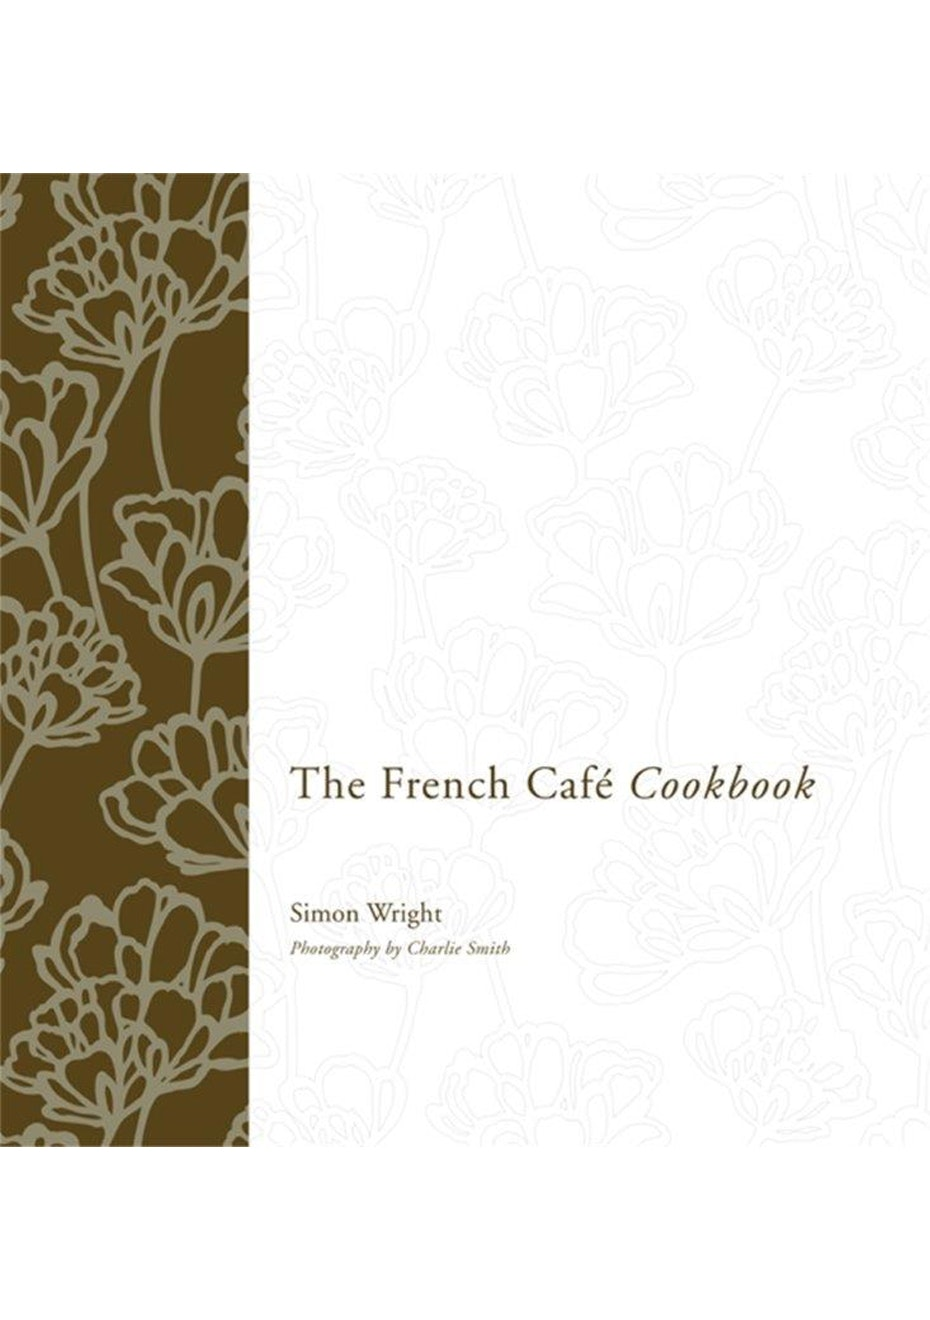 French Café Cookbook, by Simon Wright